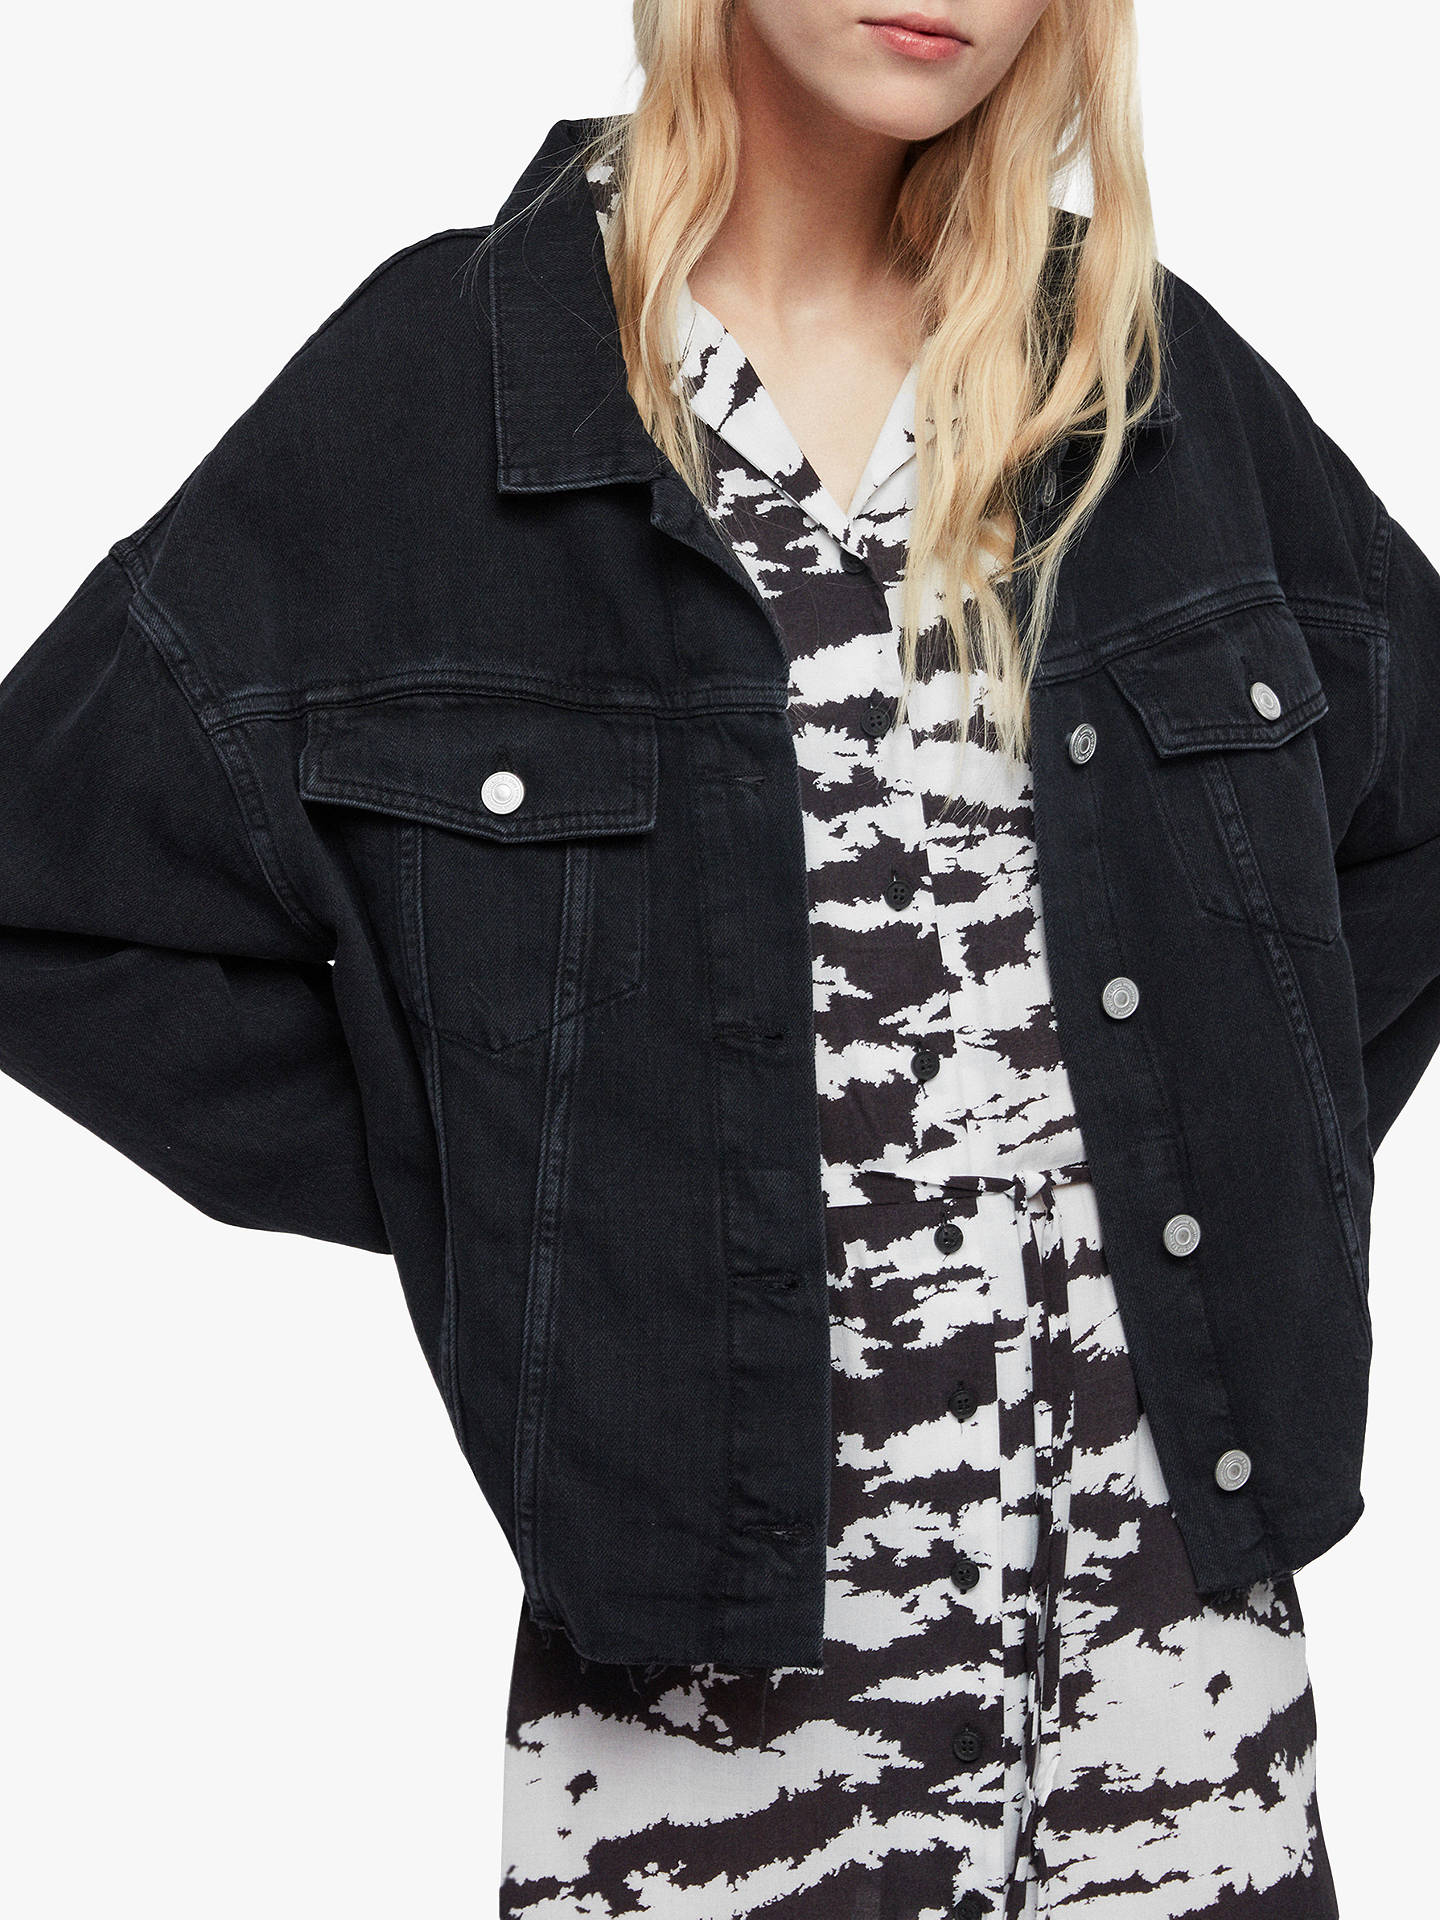 Denim Jacket, Black at John Lewis